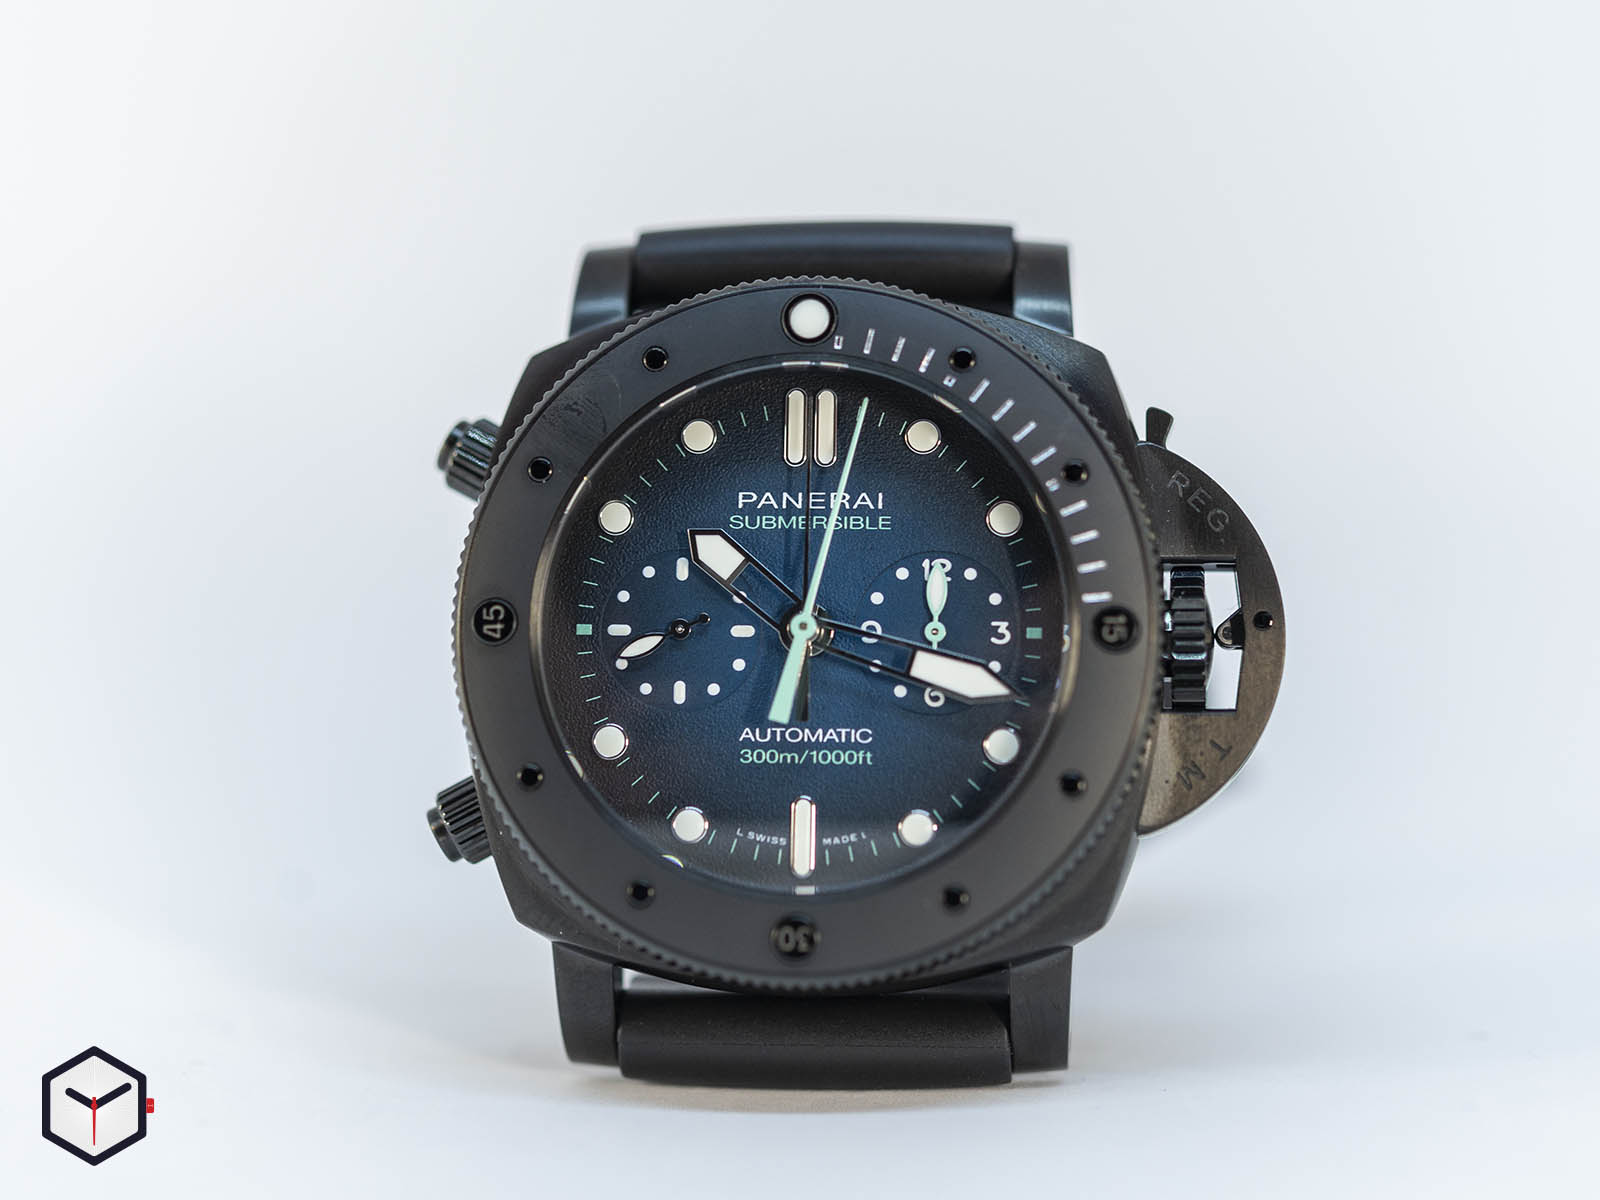 pam00983-officine-panerai-submersible-chrono-guillaume-nery-edition-47mm-sihh-2019-3.jpg